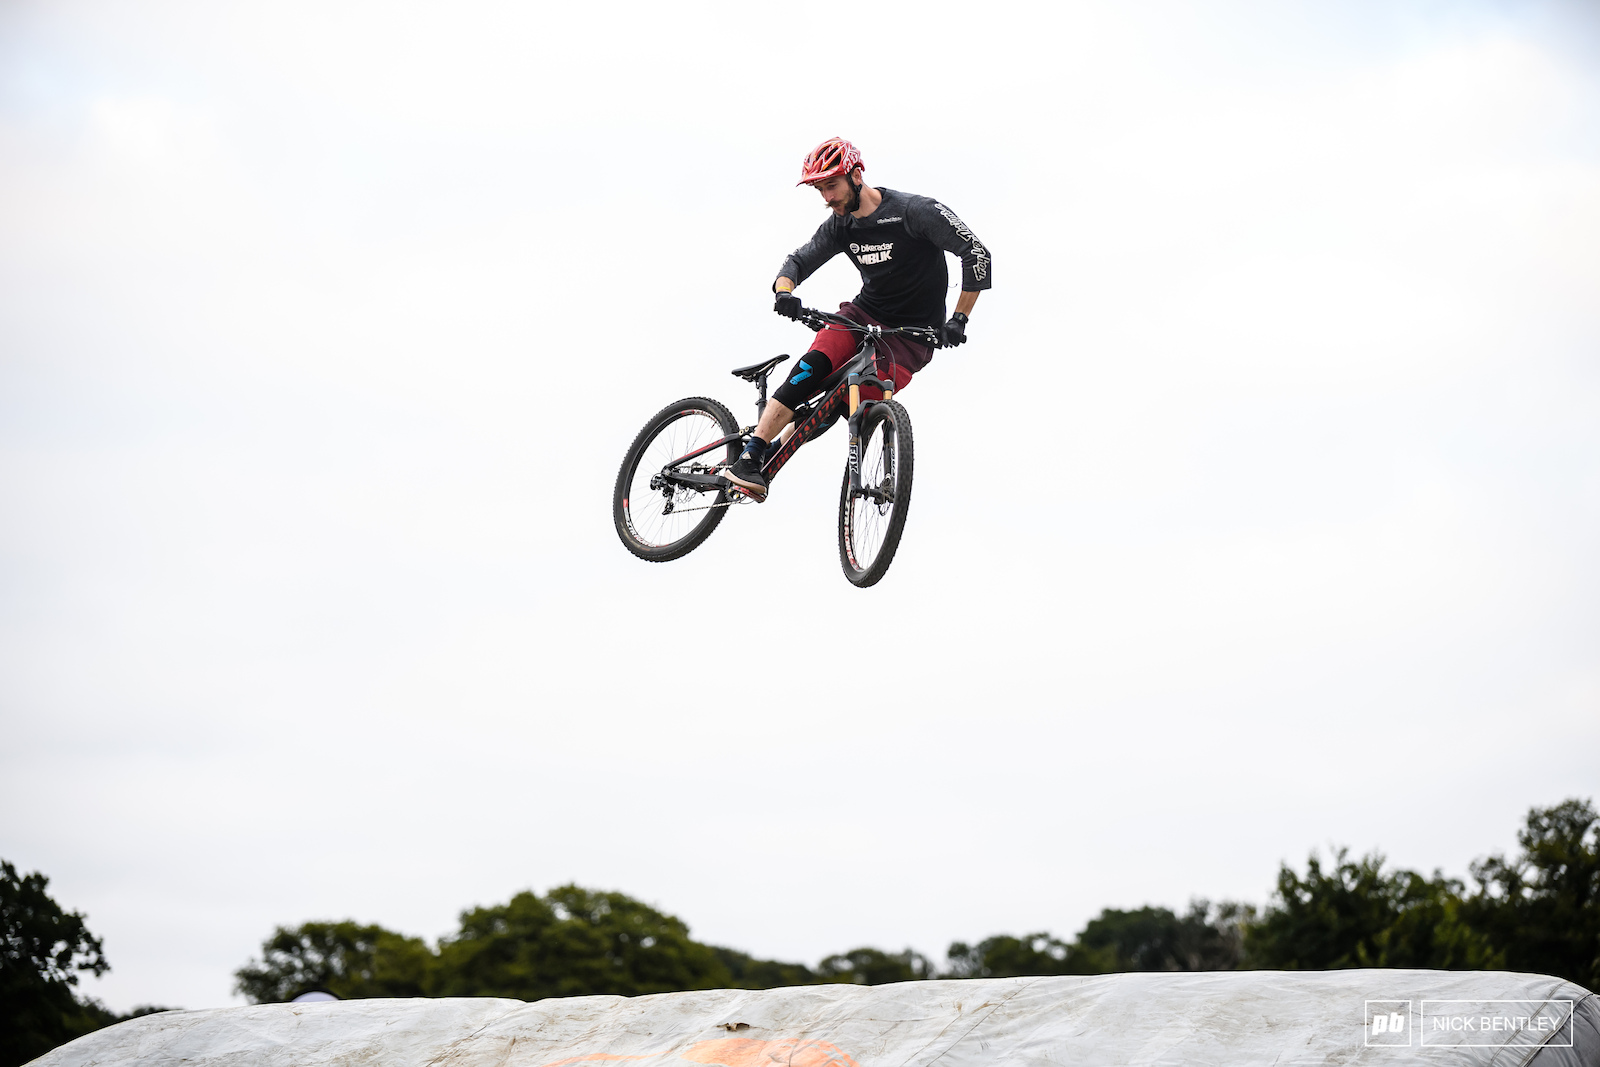 Will Soffe showing that even mini-mullet bikes are fun to ride